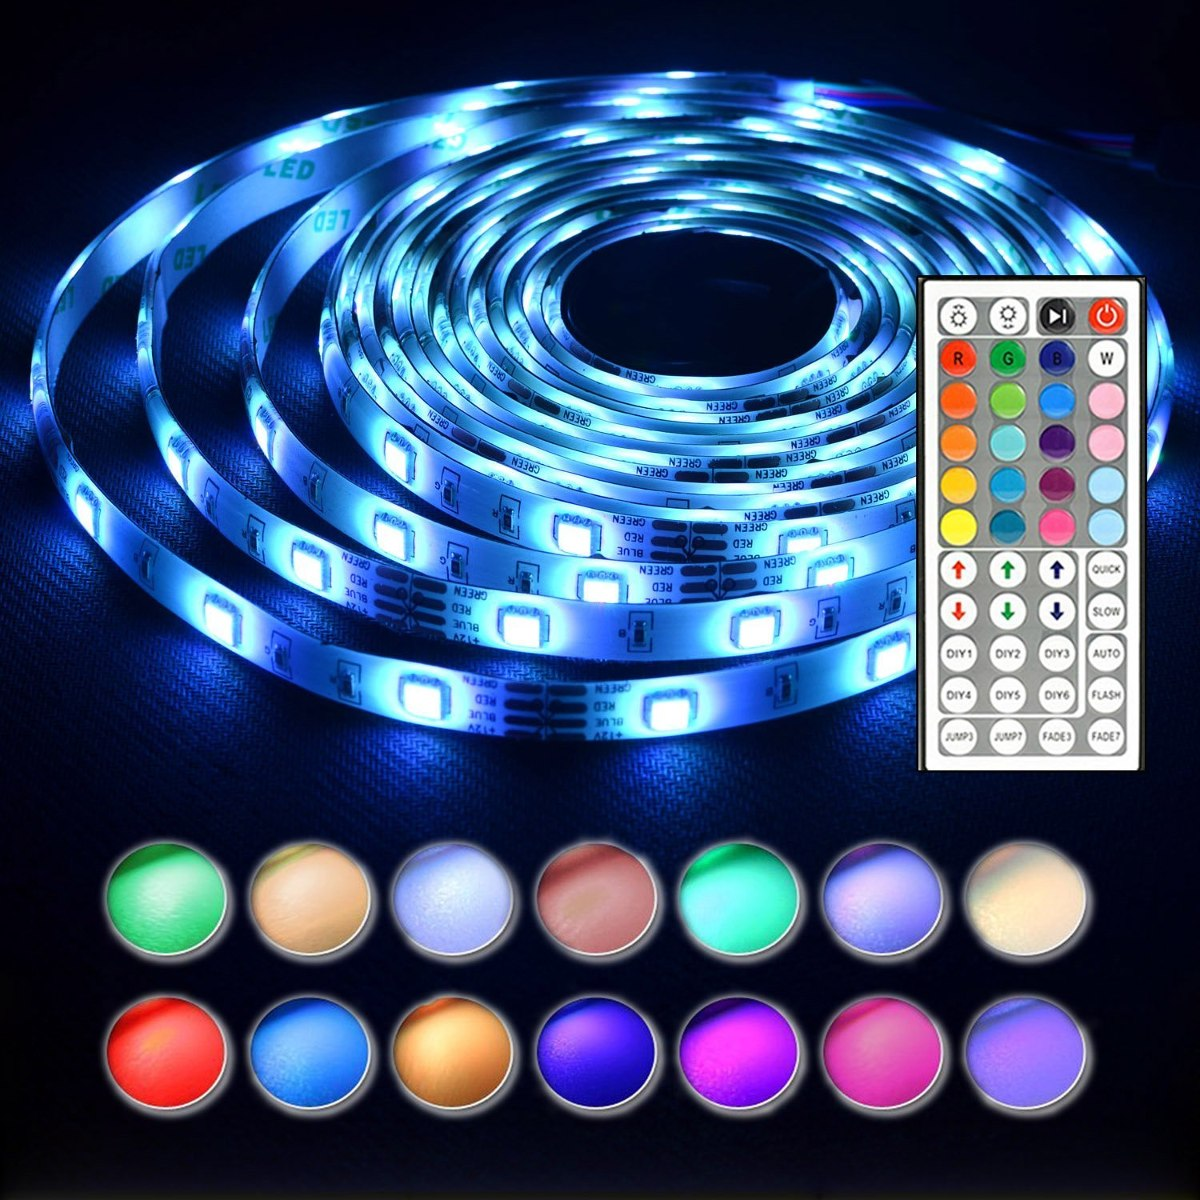 Luces tira50leds 5050 rgb light strip a prueba agua completo luces tira50leds 5050 rgb light strip a prueba agua completo cargando zoom aloadofball Image collections